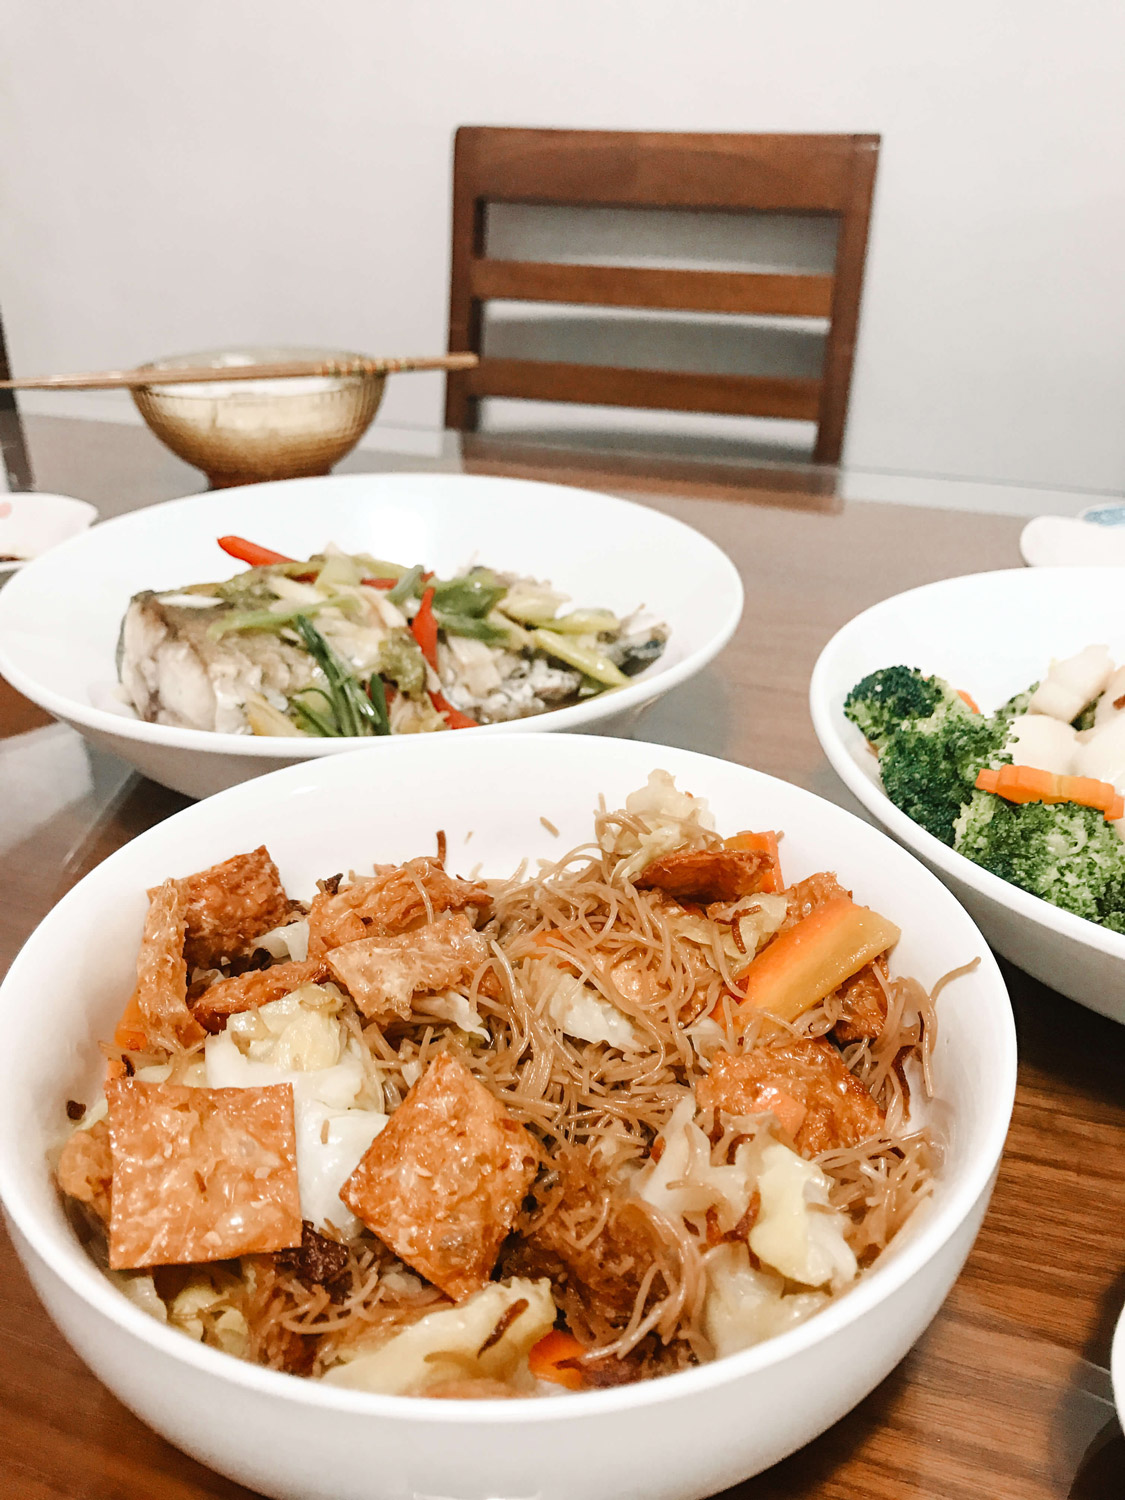 Three large serving dishes filled to the brim with food.